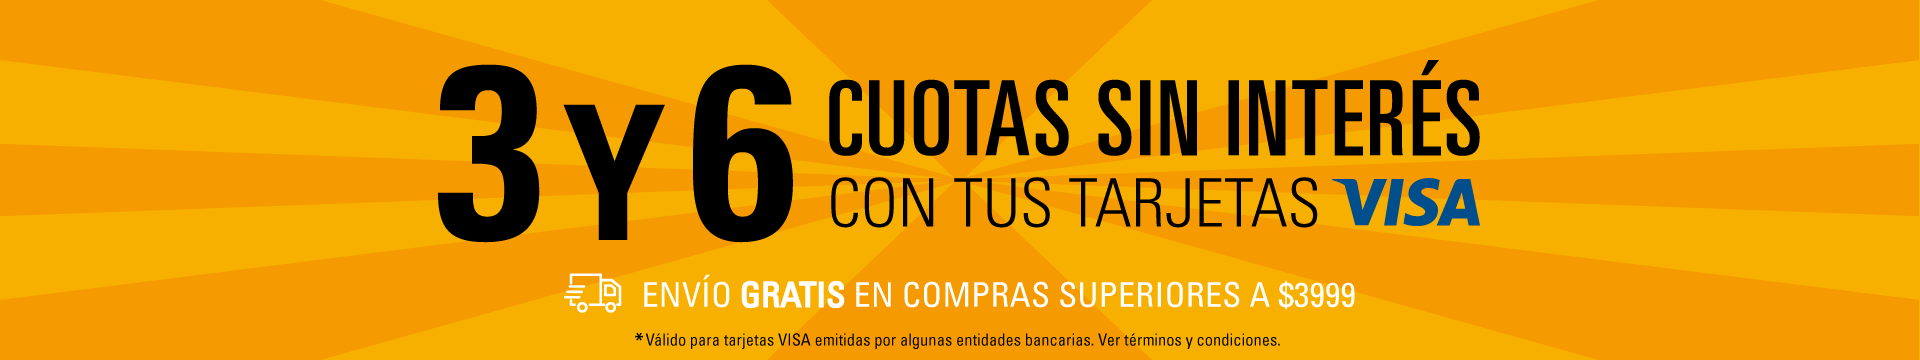 BANNER cuotas